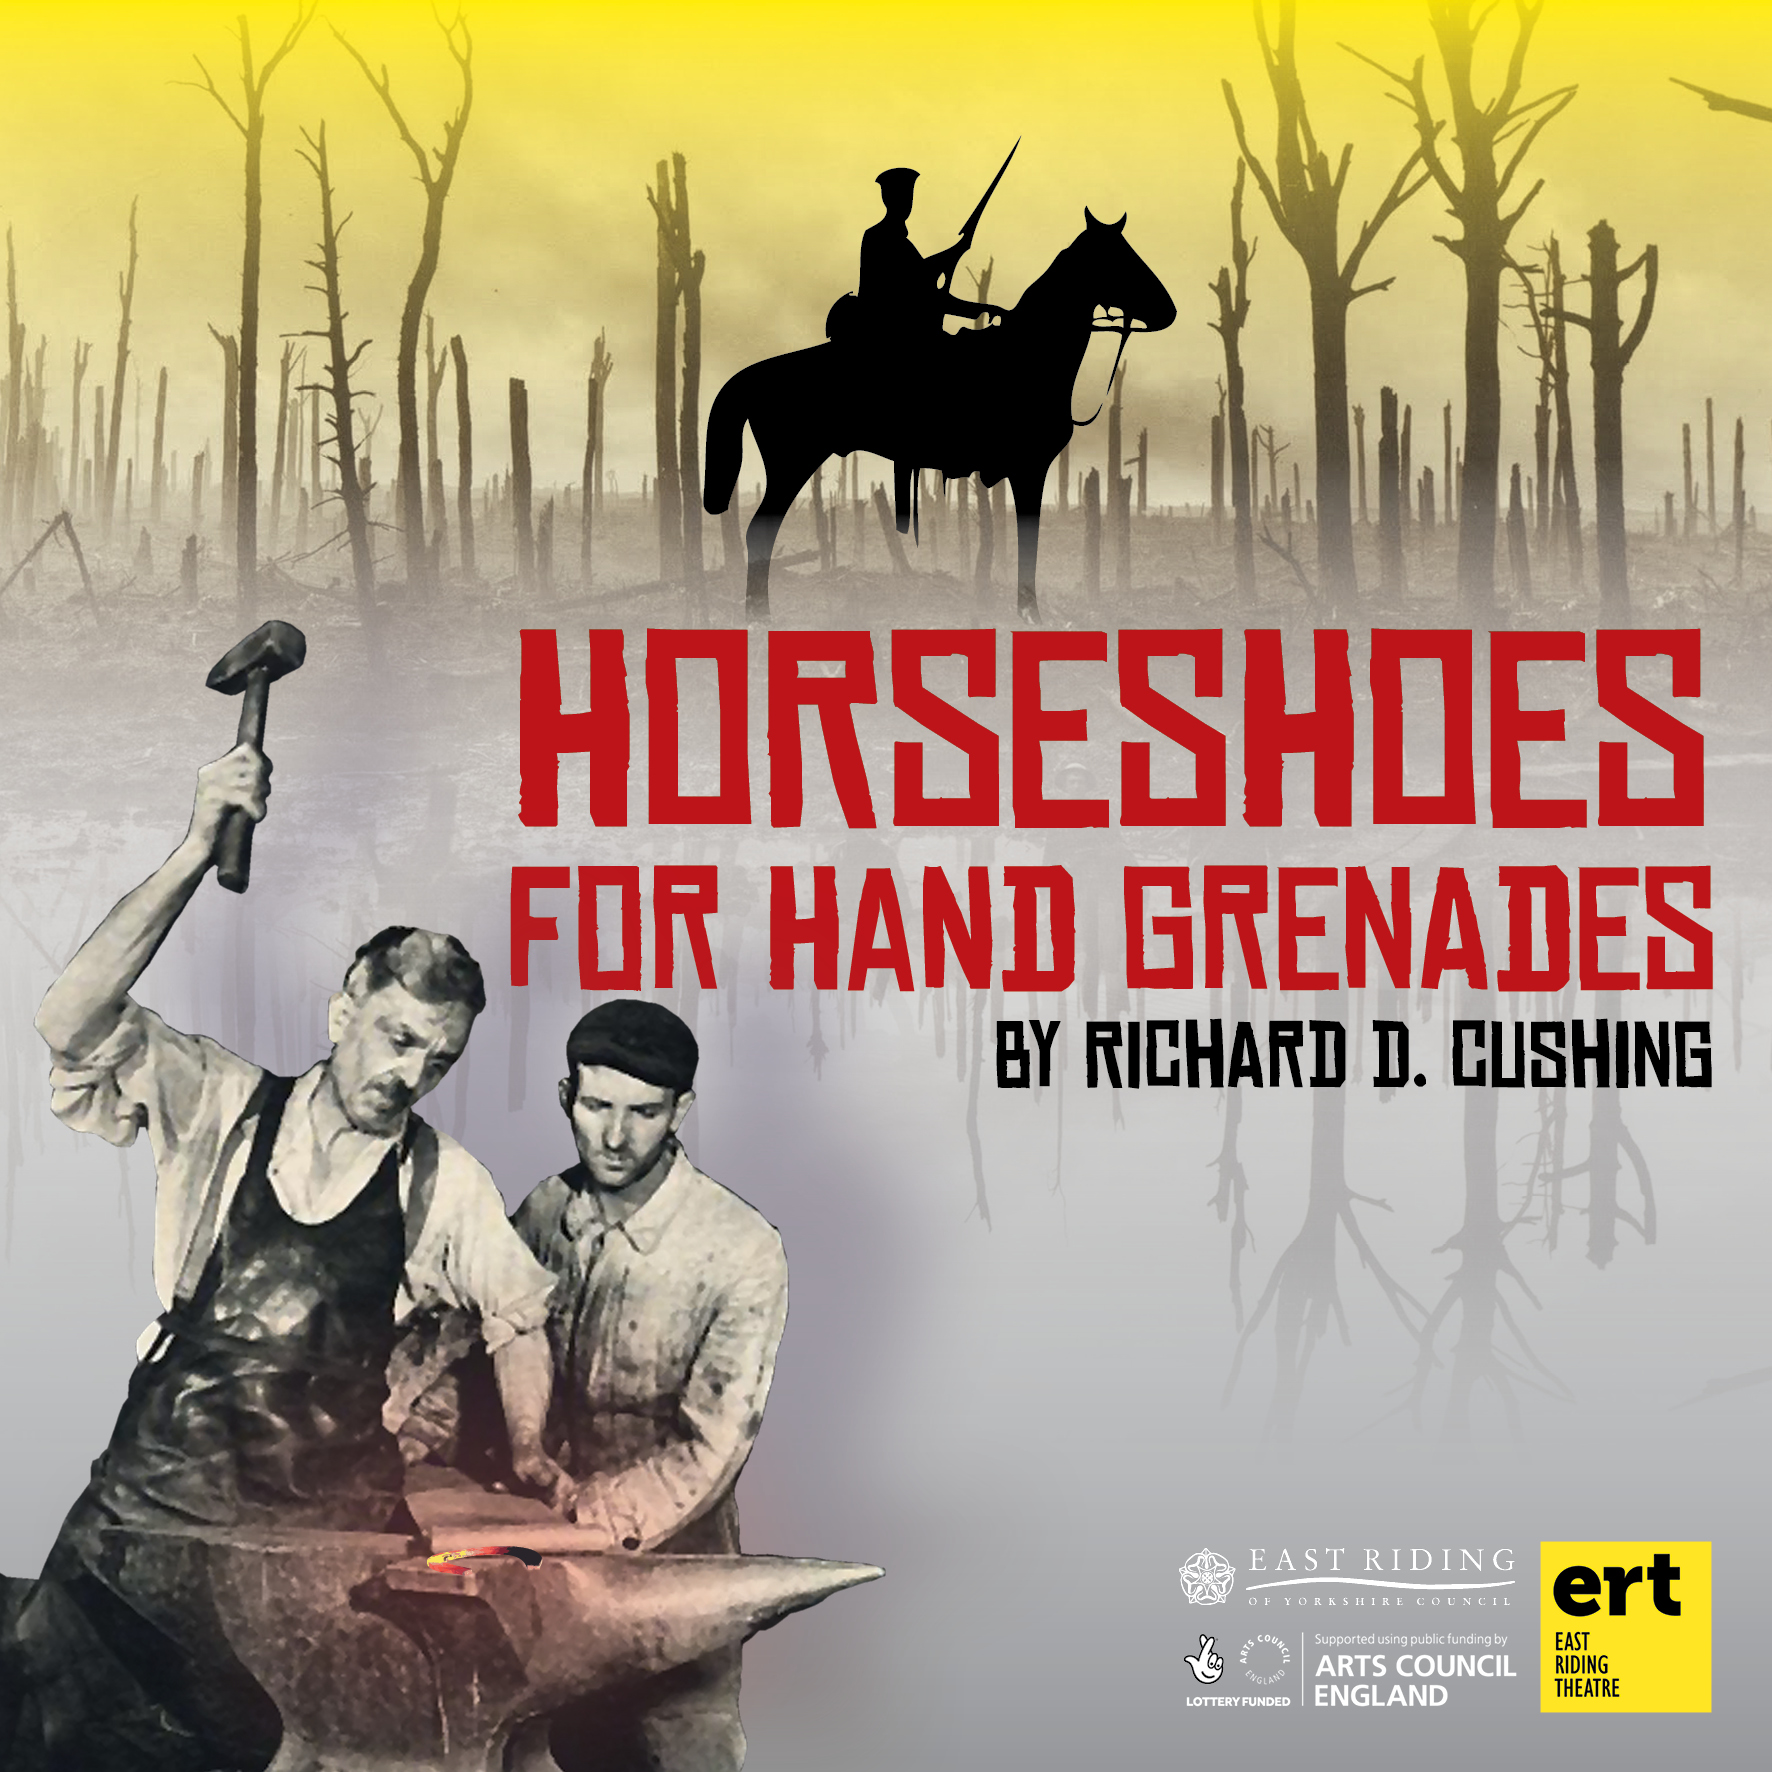 Horseshoes for Hand Grenades